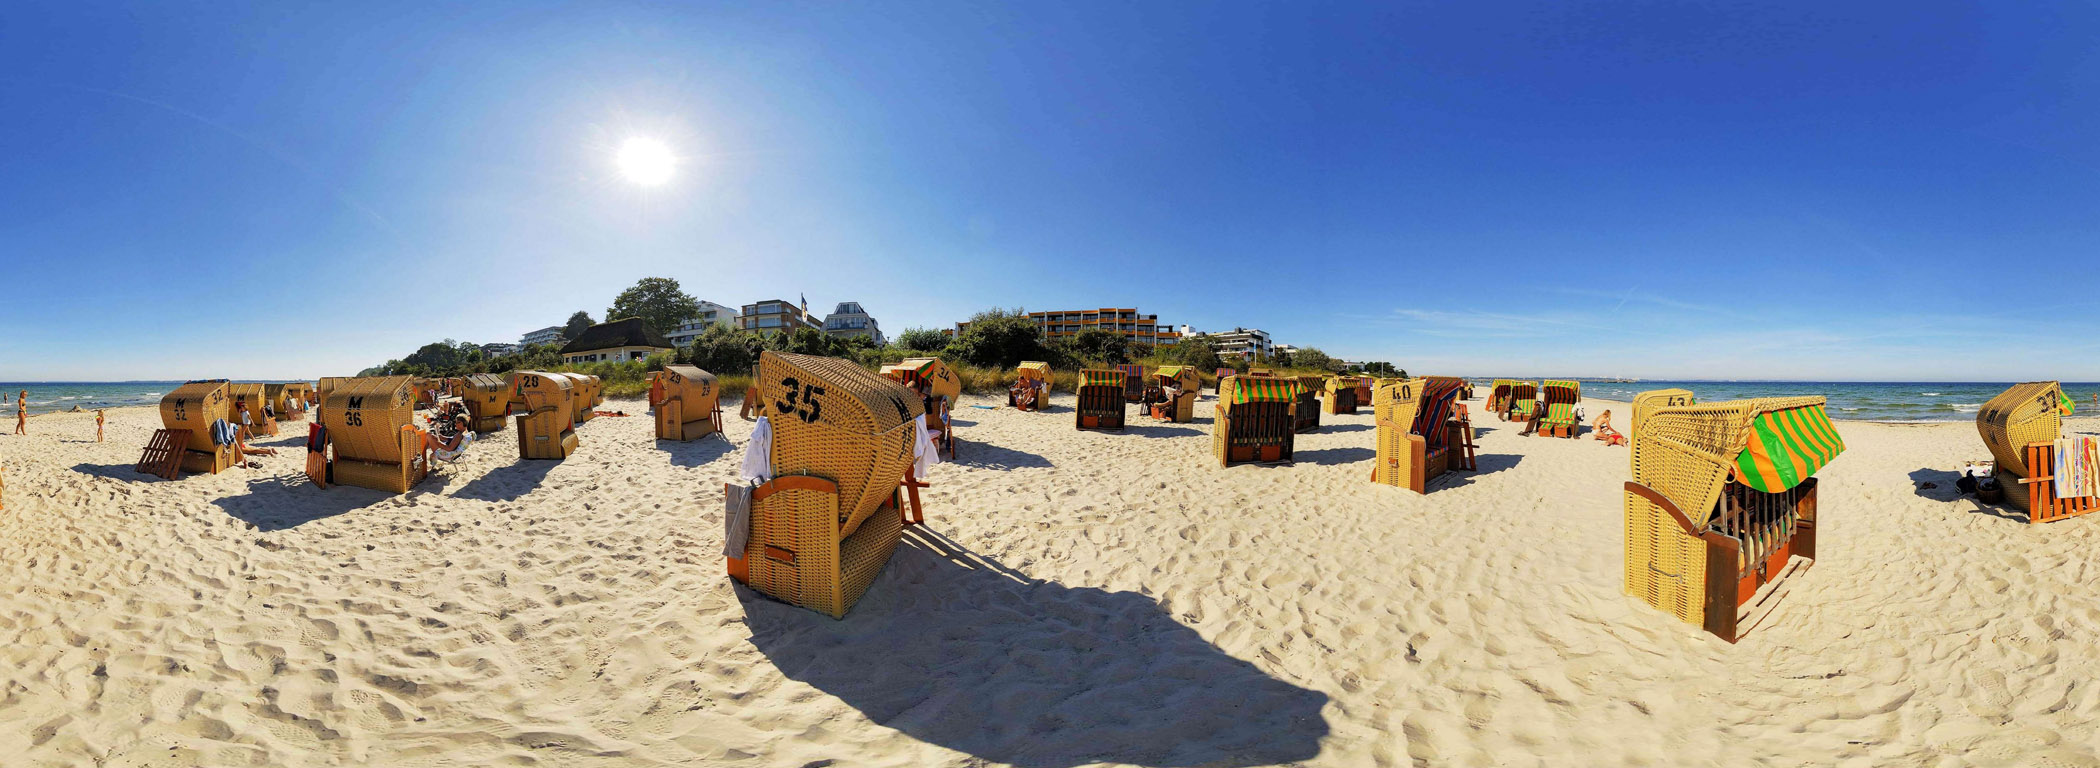 plage-de-luxe-photographie-panoramique